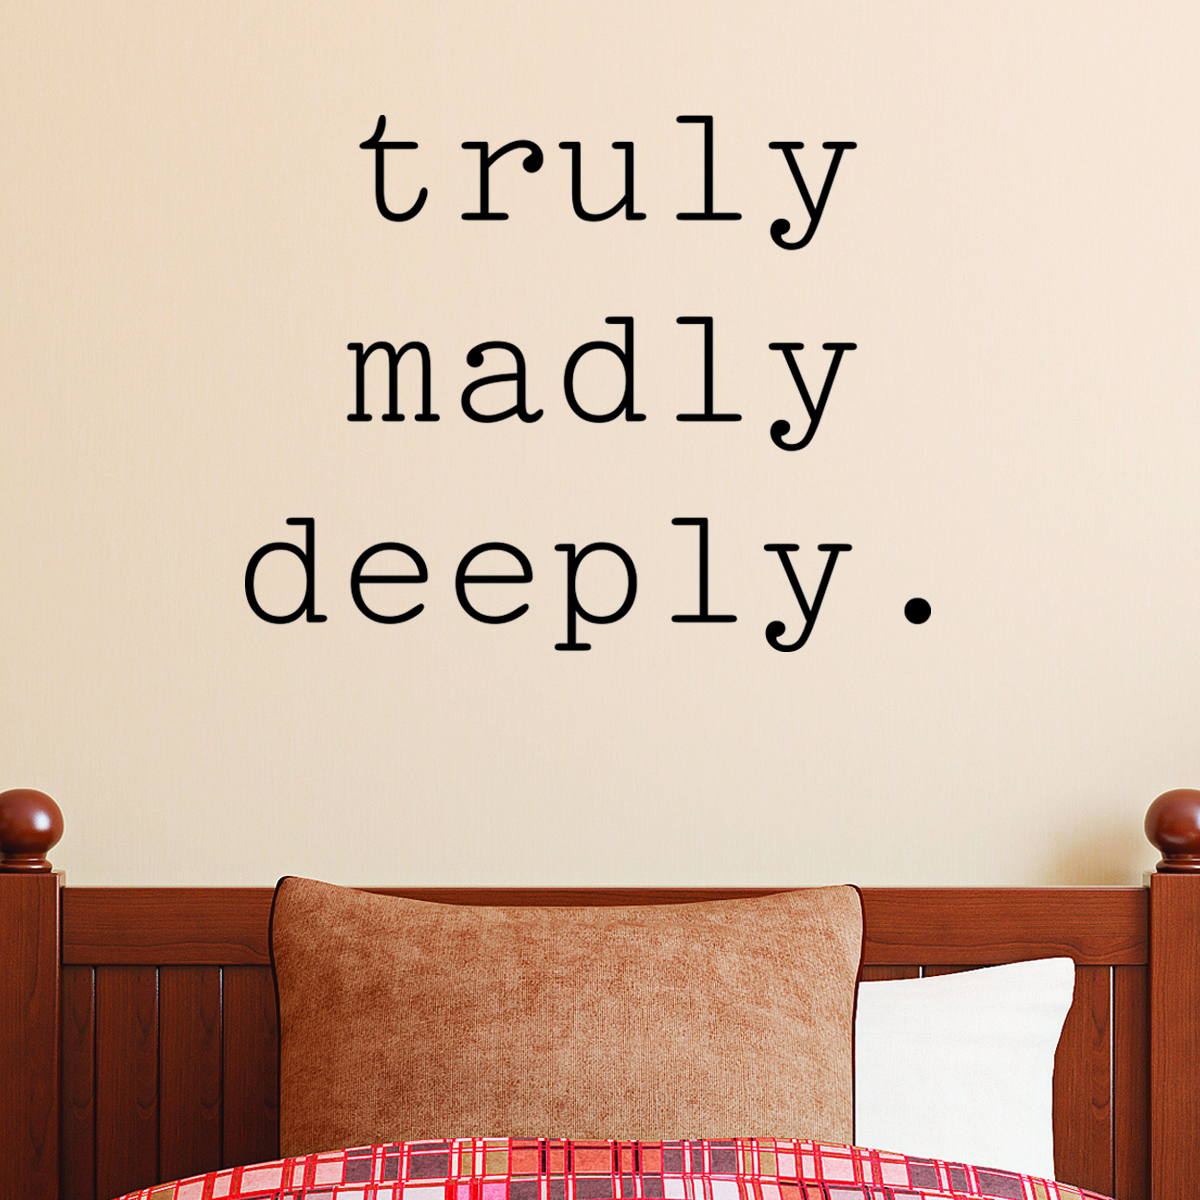 Love Wall Quotes: Truly Madly Deeply Wall Quotes™ Decal